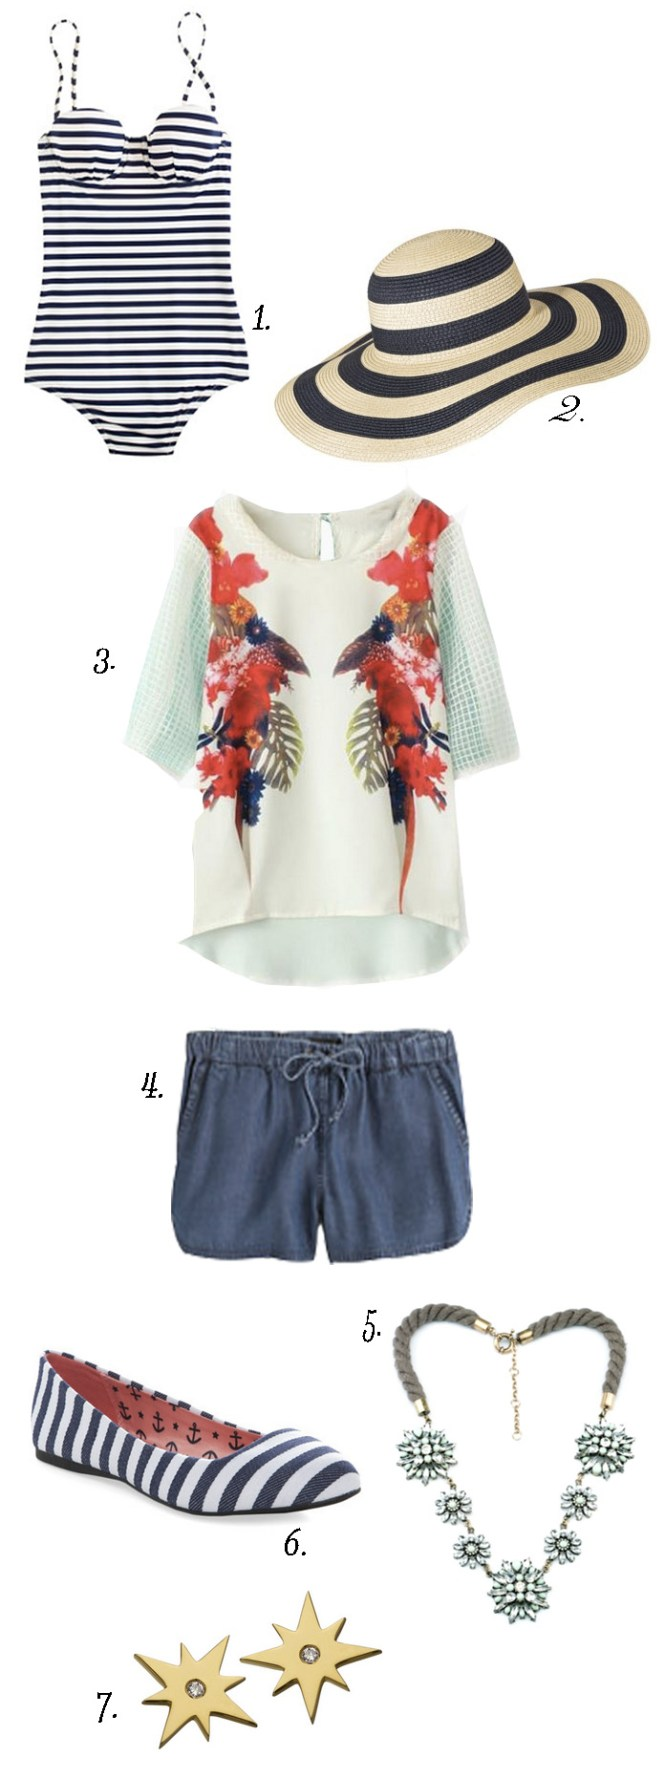 July 4th outfit ideas, Summer outfit ideas